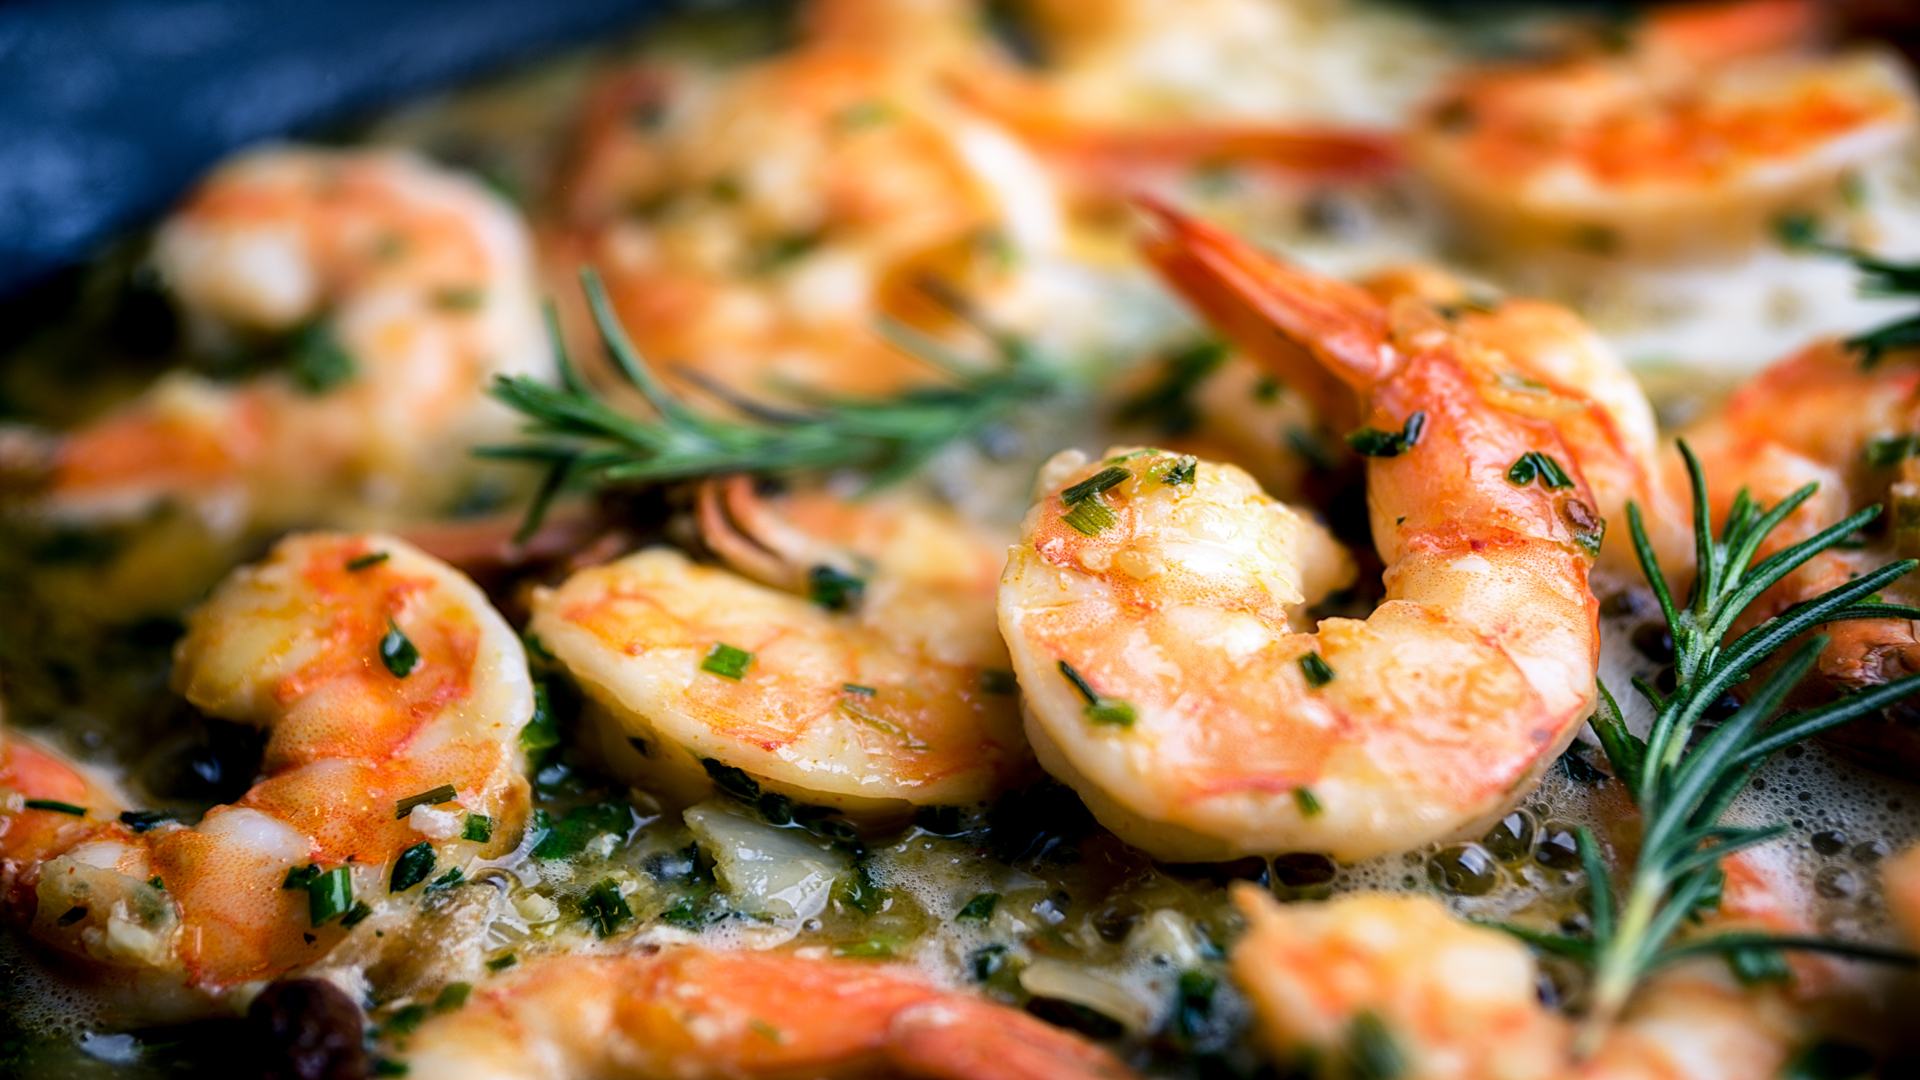 Shrimp sauteing in butter flavored oil.